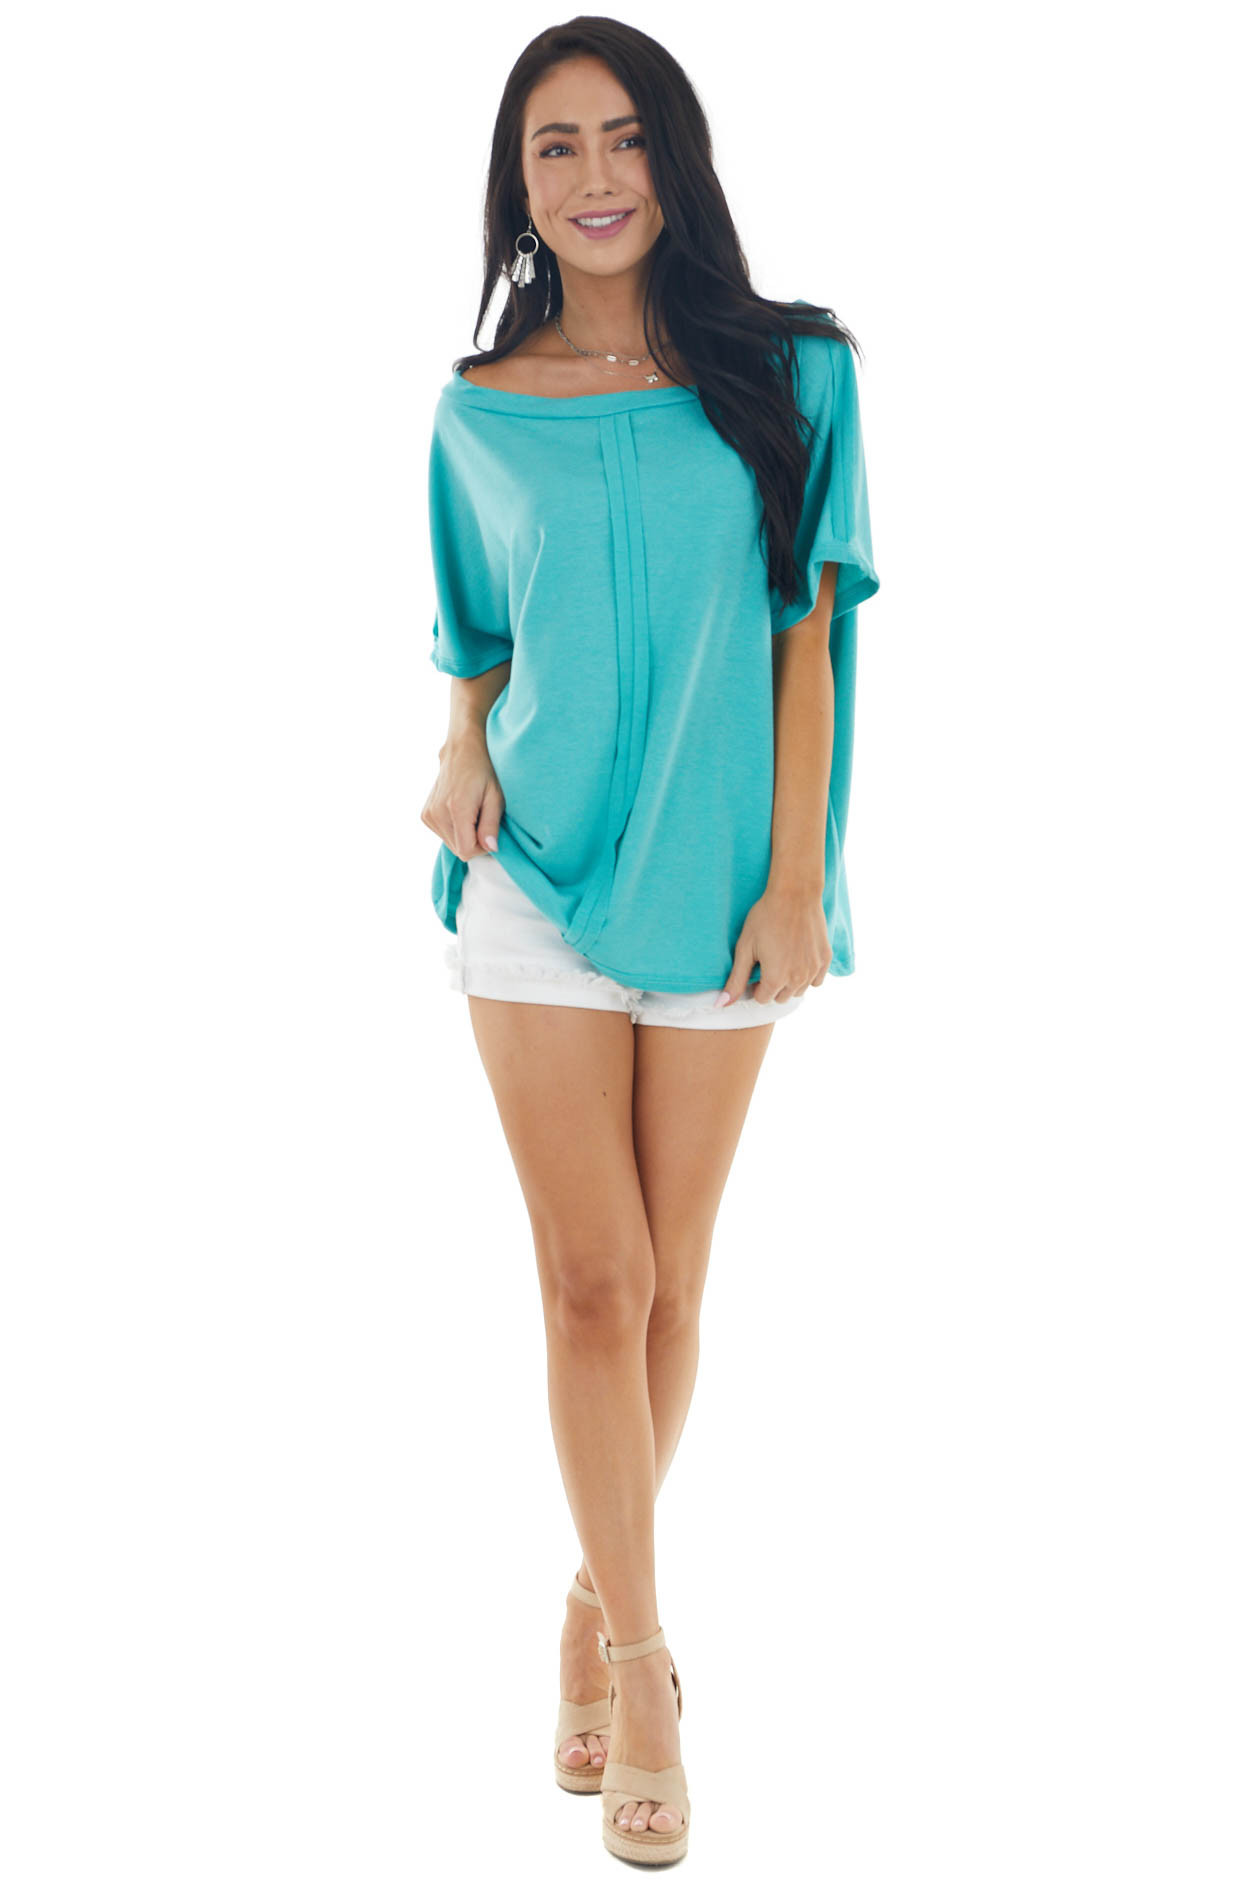 Teal Half Sleeve Knit Top with Raw Edge Seam Detail